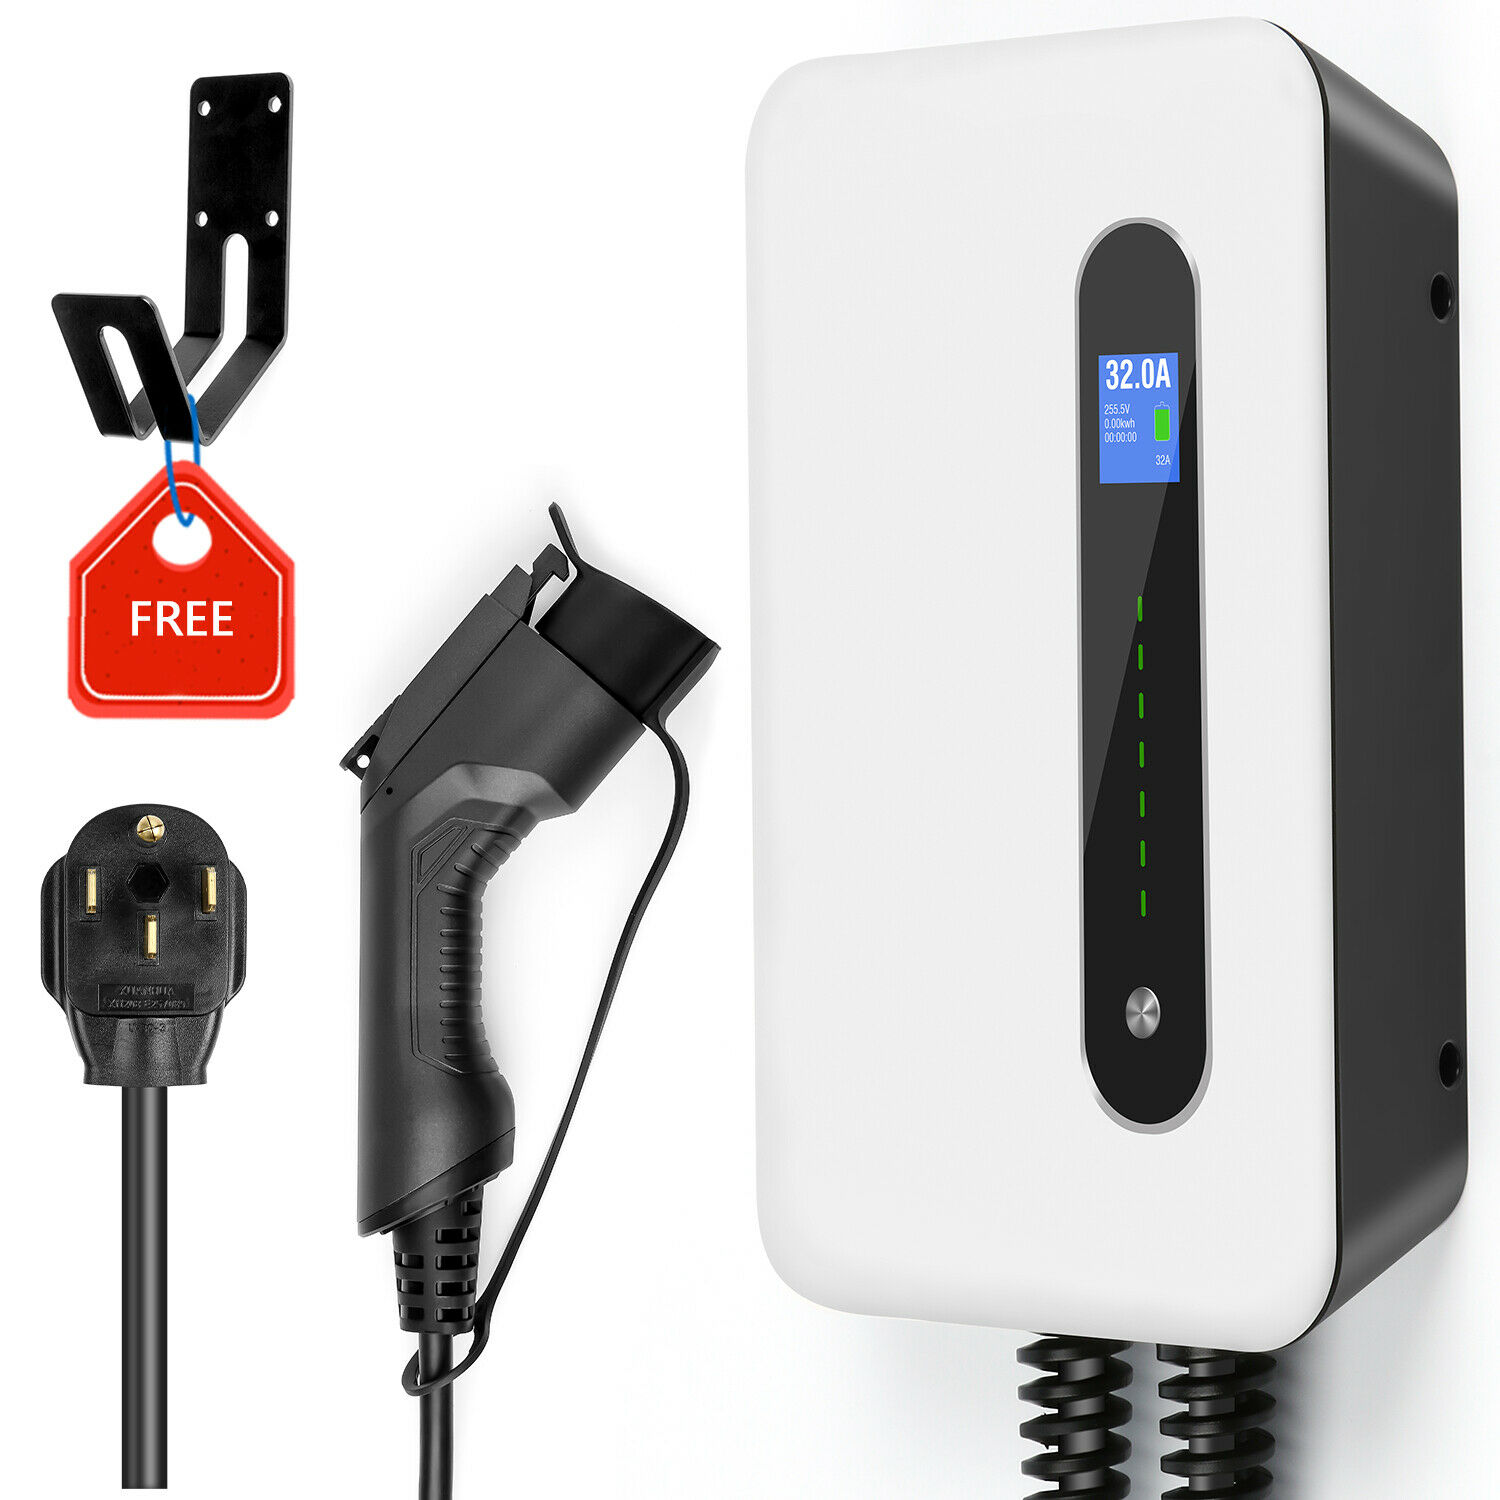 EV Charging Station Wall-mounted Electric Vehicle Charger EVSE Wallbox SAE J1772 32A Level2 220-240V NEMA 14-50 title=